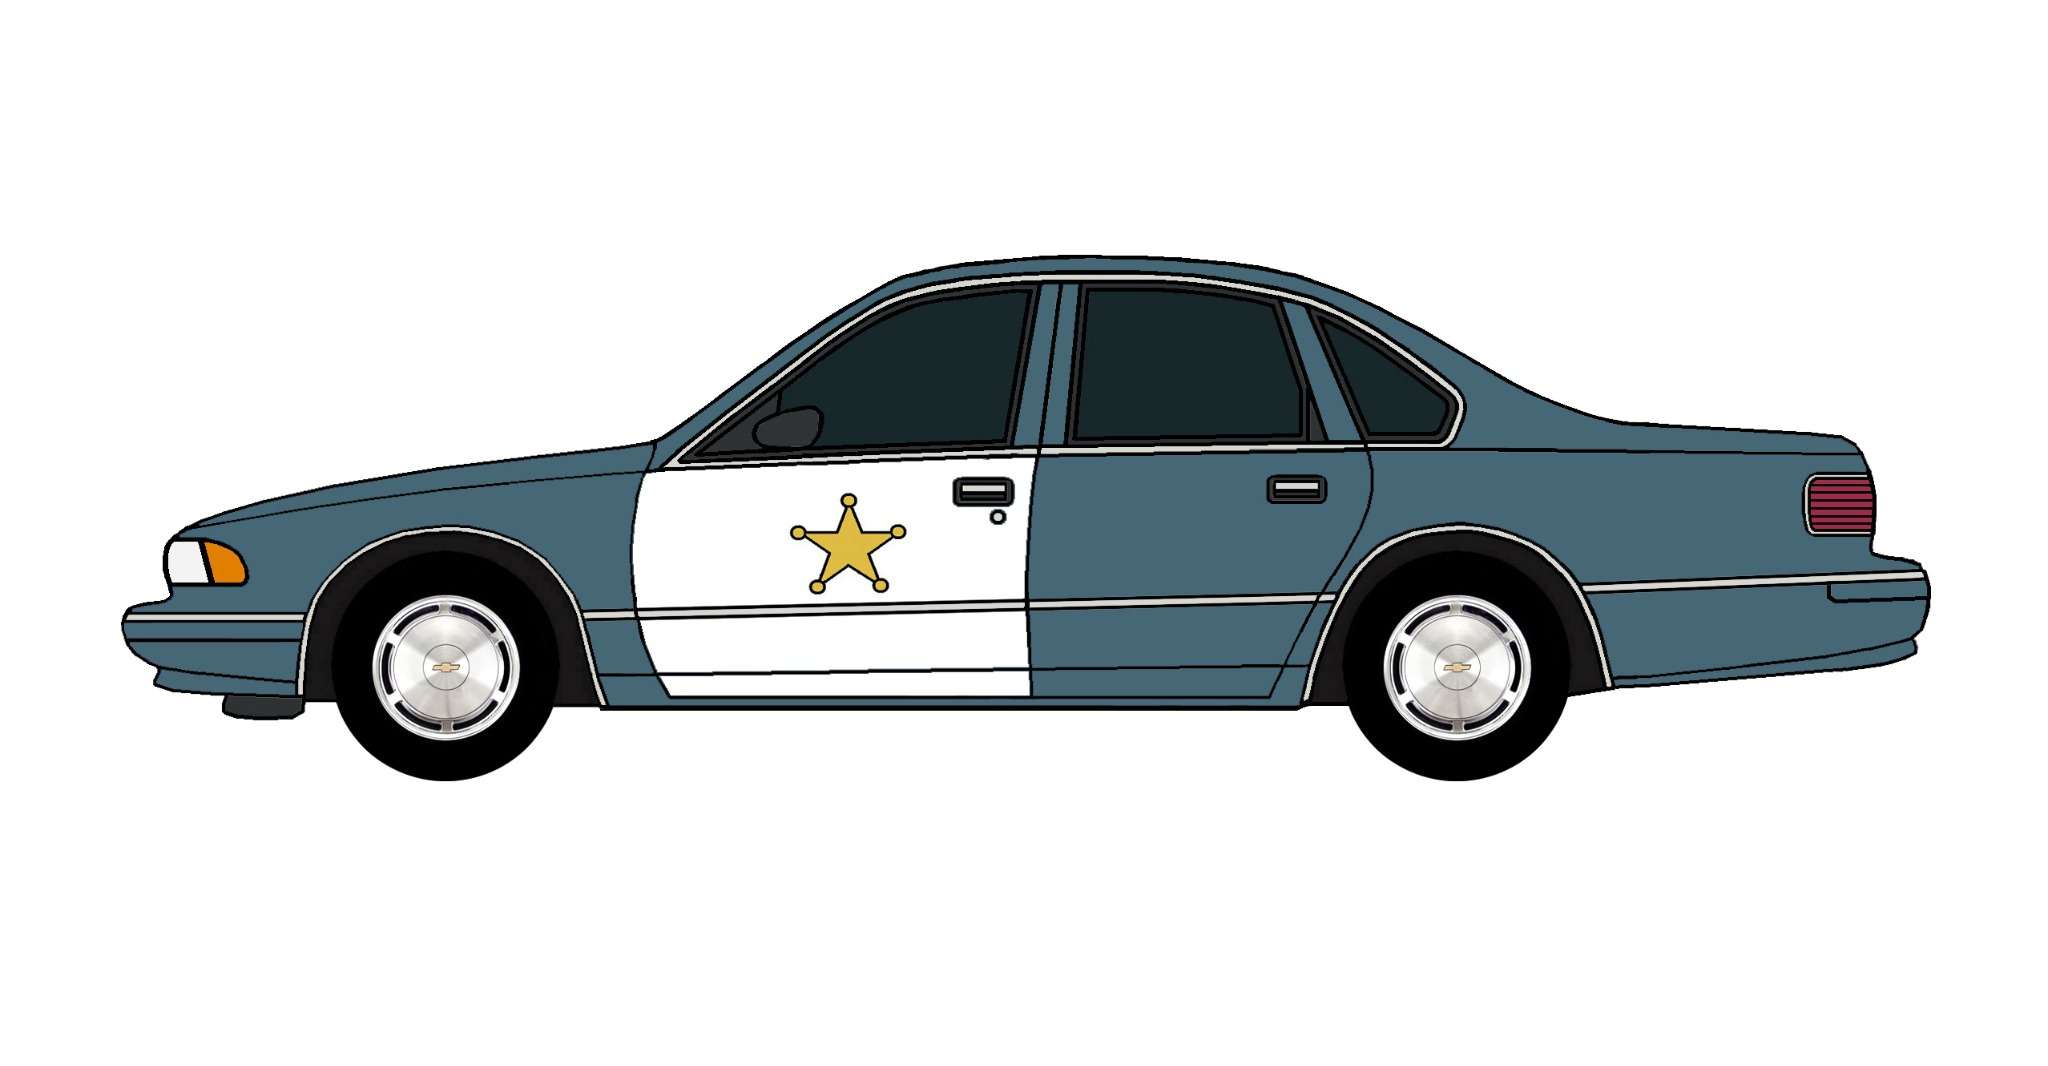 1995 Chevy Caprice Police Car BRITTANY BLUE